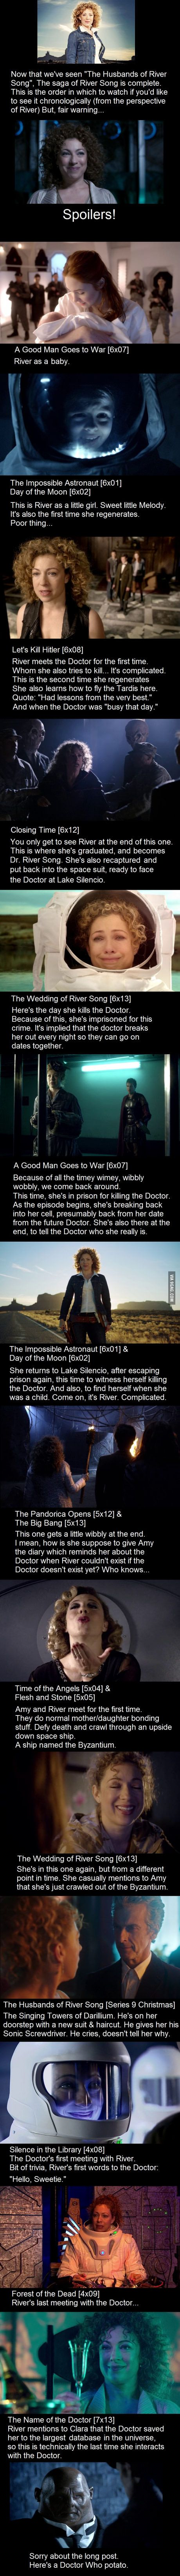 River Song's Timeline. Watch in this order if you'd like to…